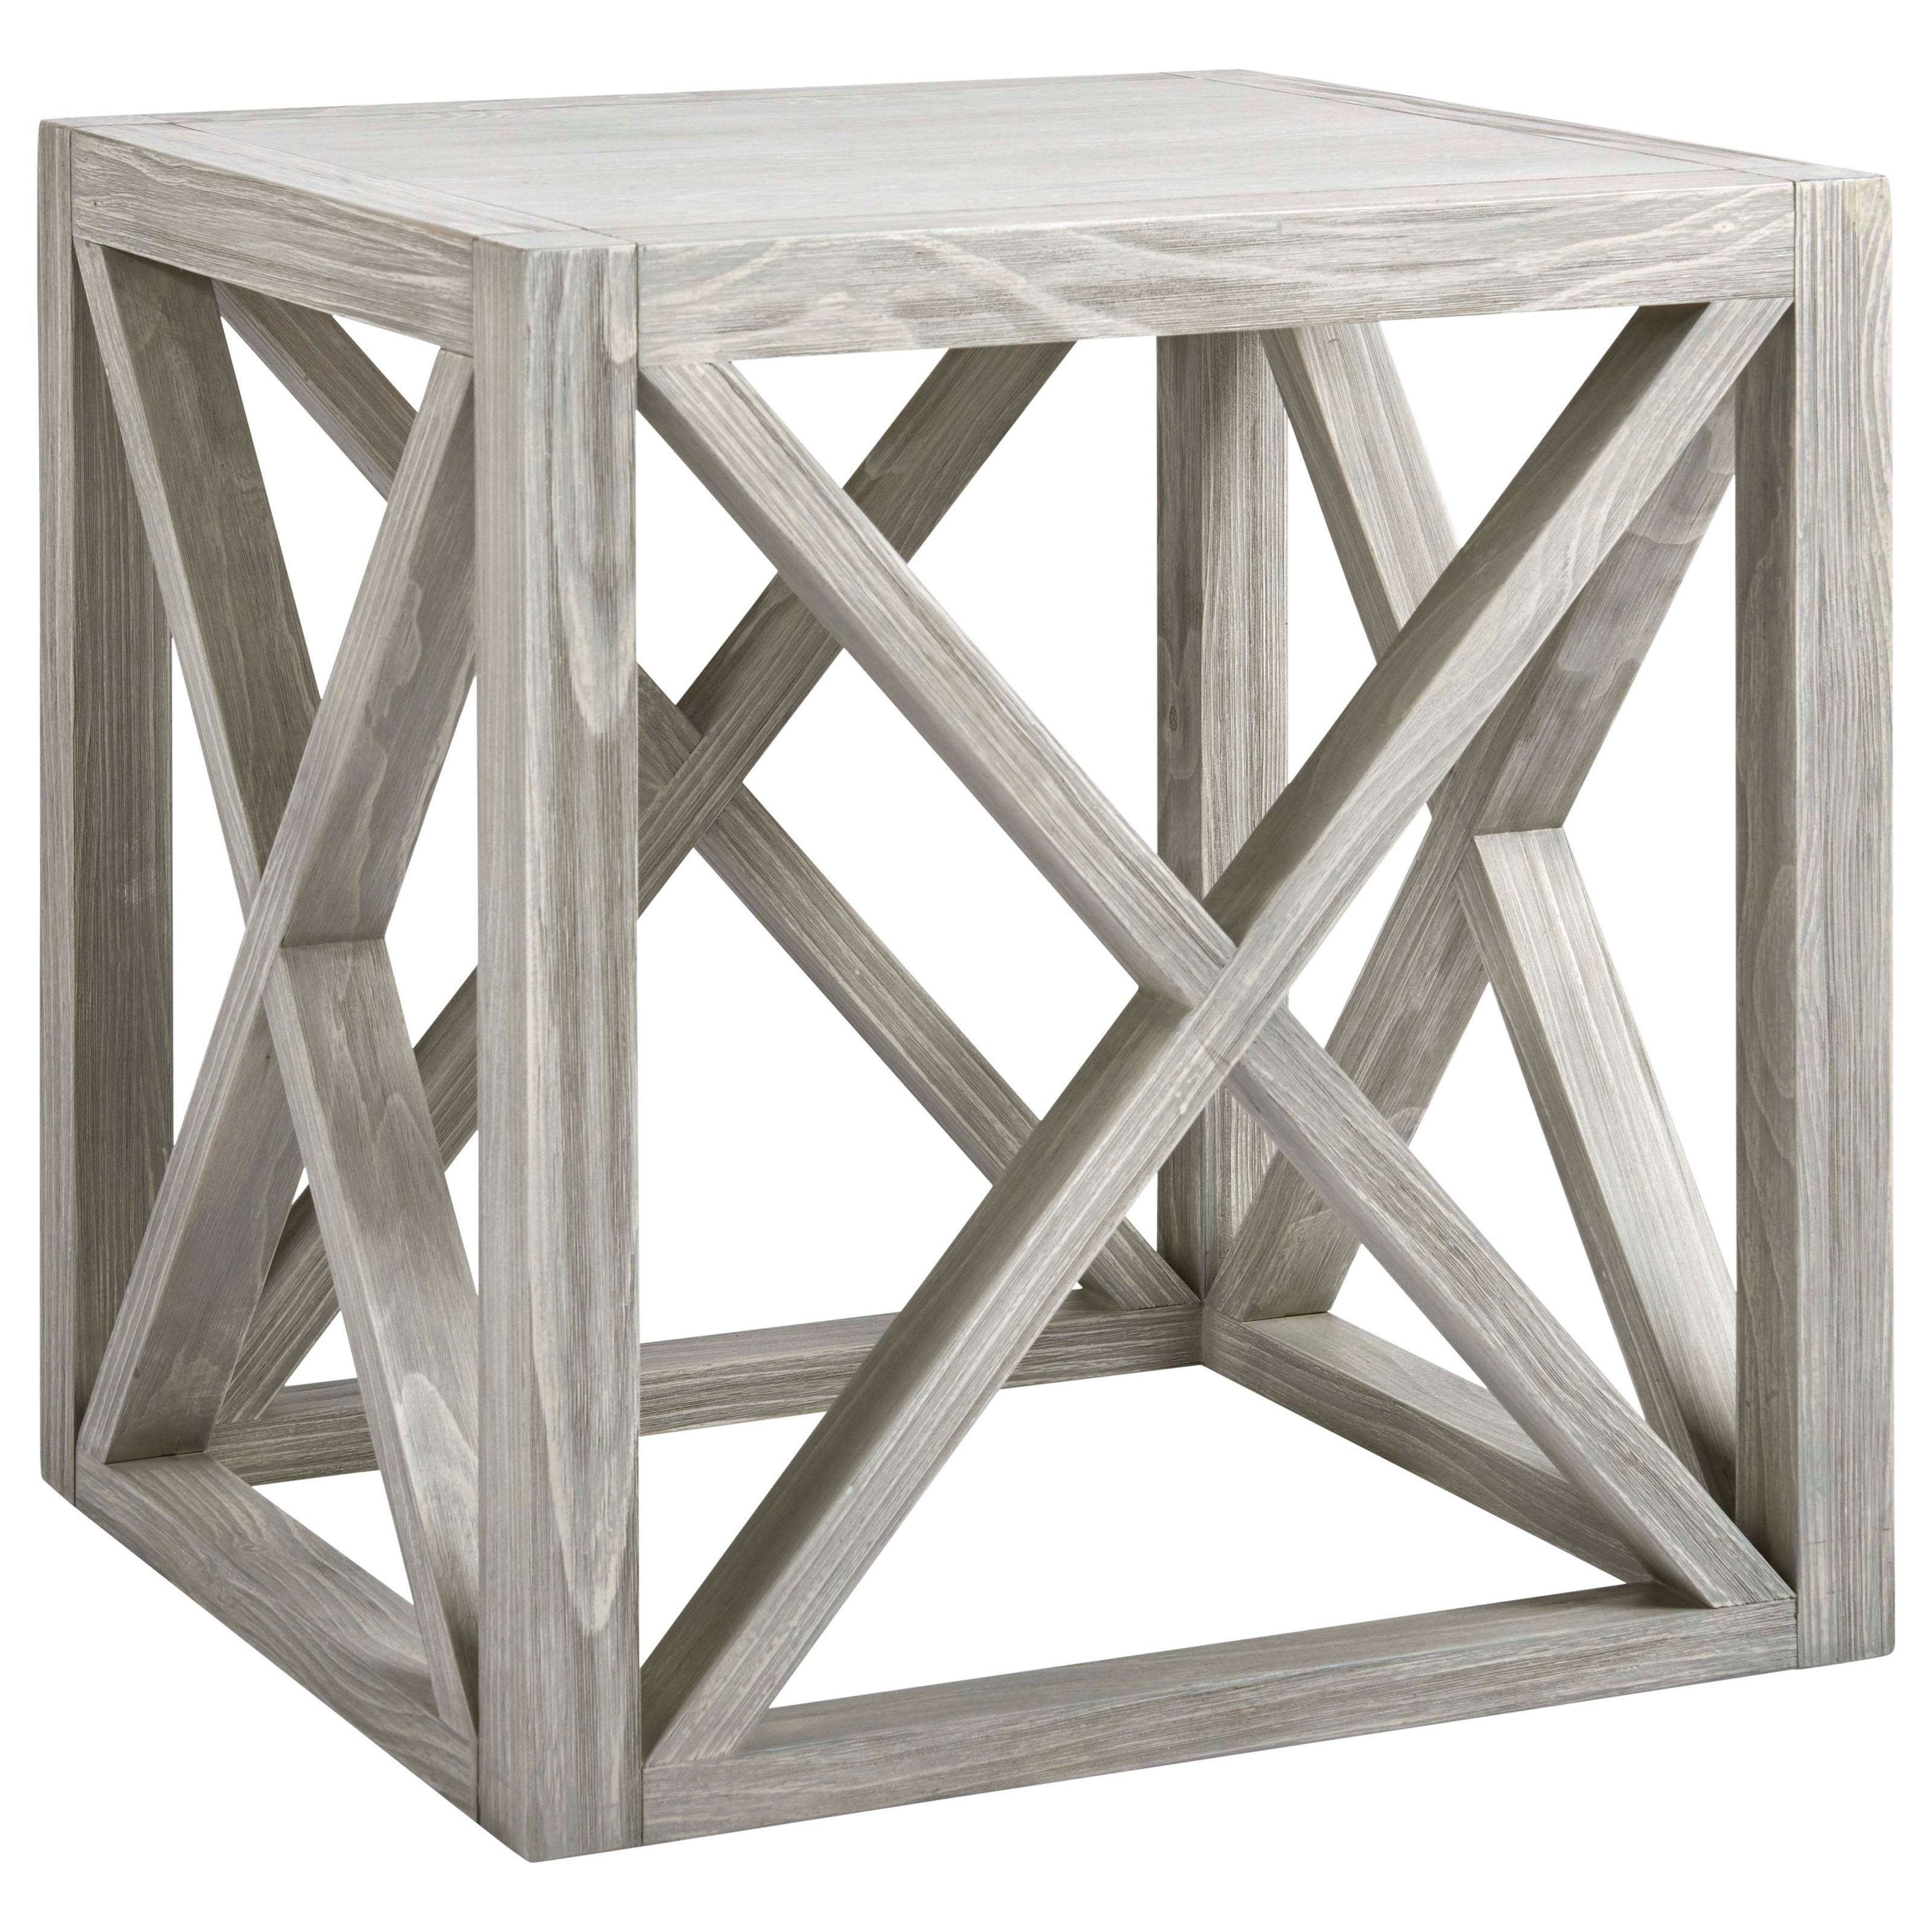 Coastal Living Home - Escape Boardwalk End Table by Universal at Stuckey Furniture